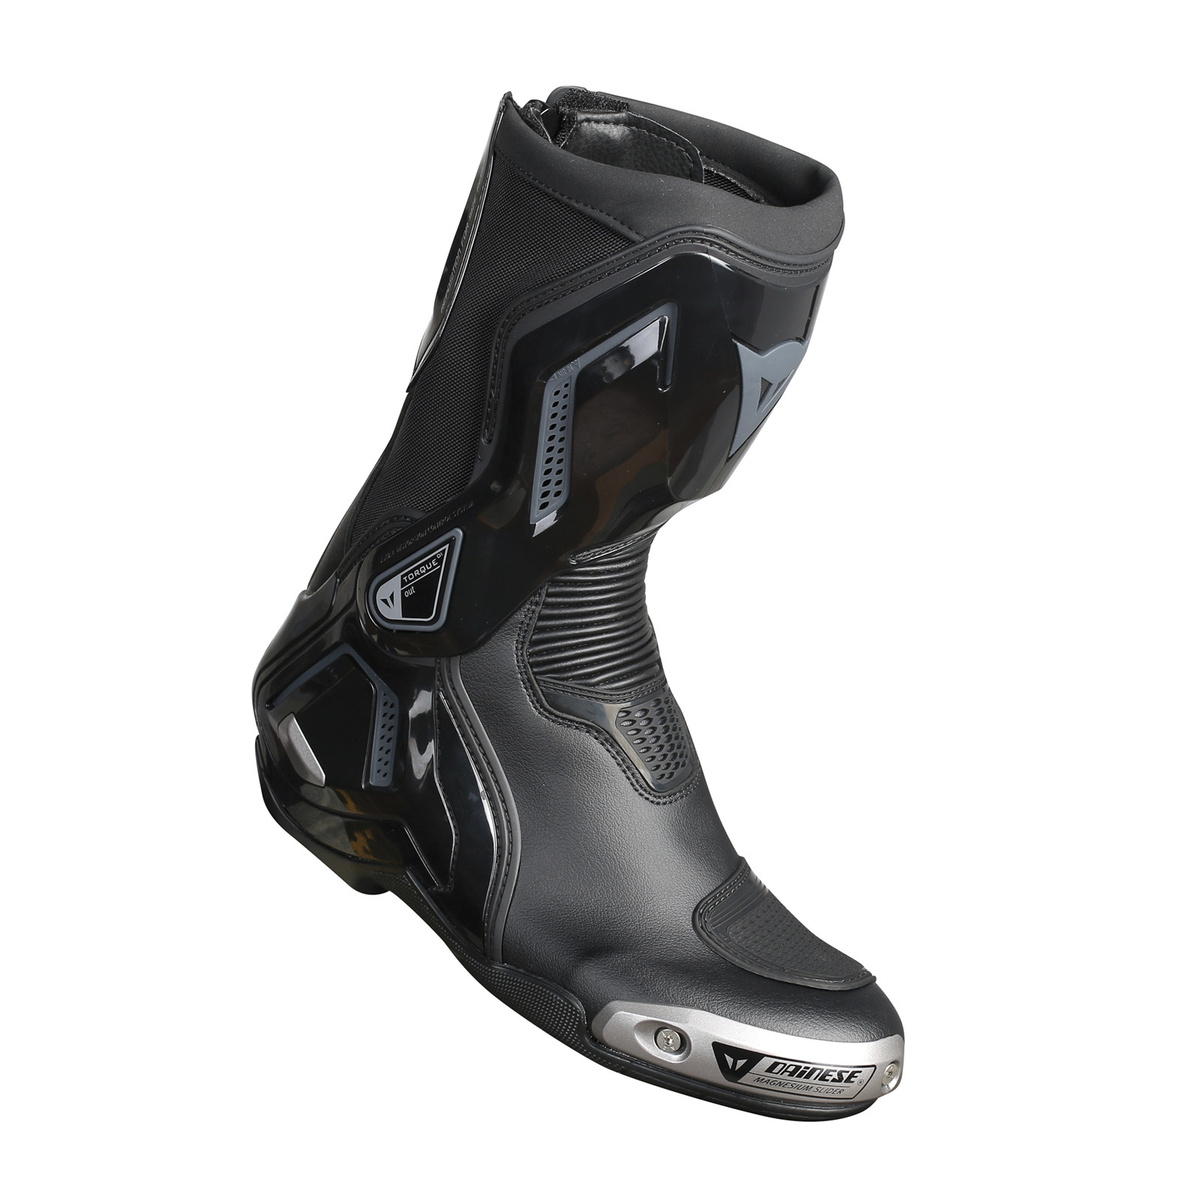 Dainese Torque D1 Out Lady Stiefel Schwarz/anthrazit 36